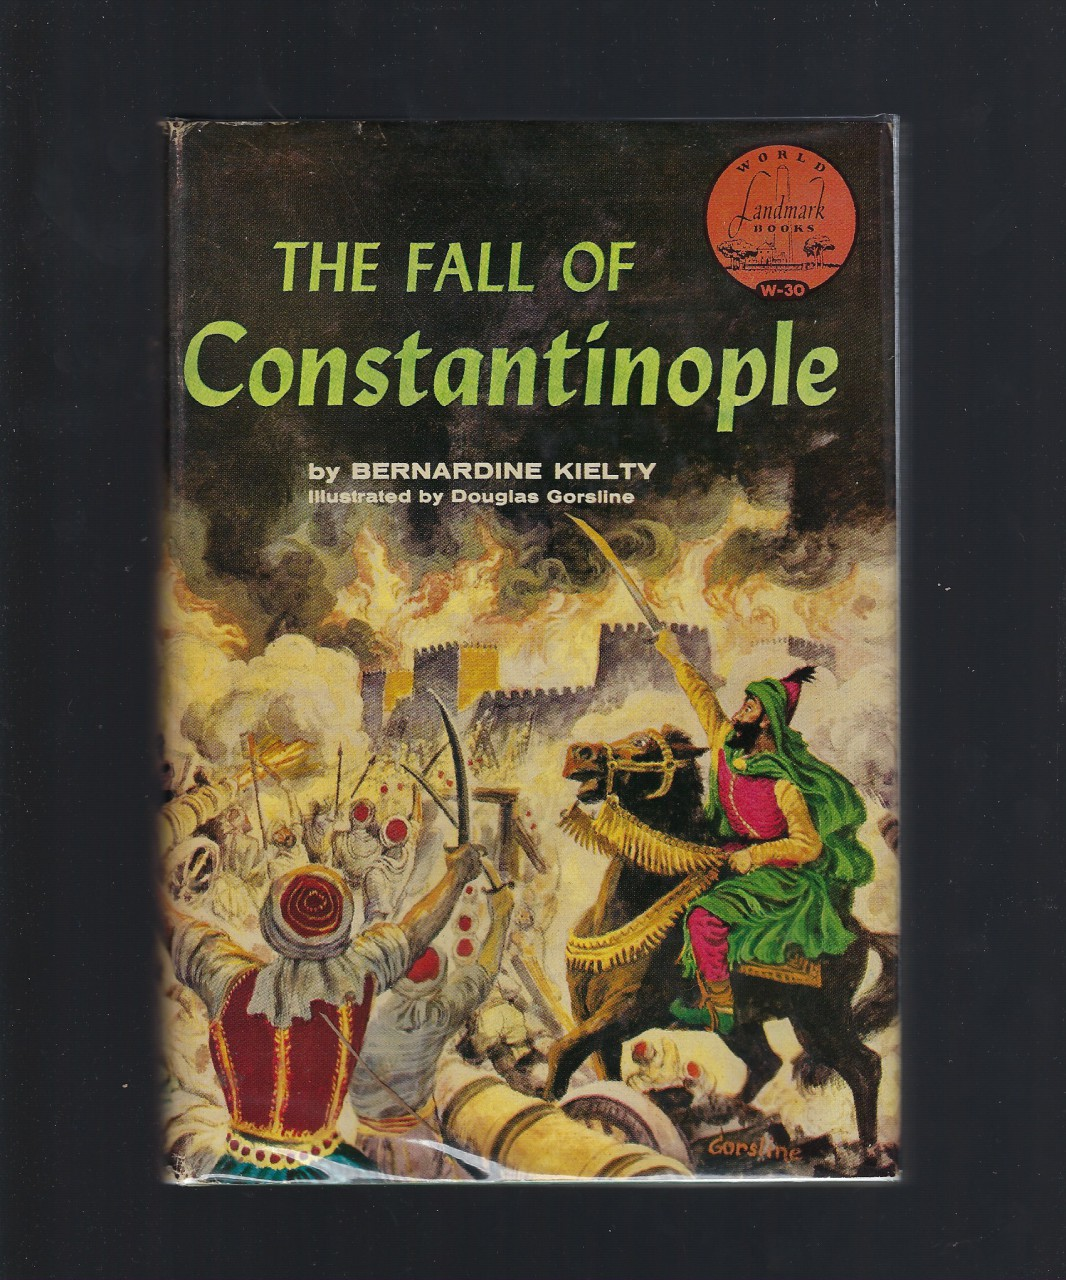 The Fall of Constantinople World Landmark #30 First Printing HB/DJ, Bernardine Kielty; Illustrator-Douglas Gorsline